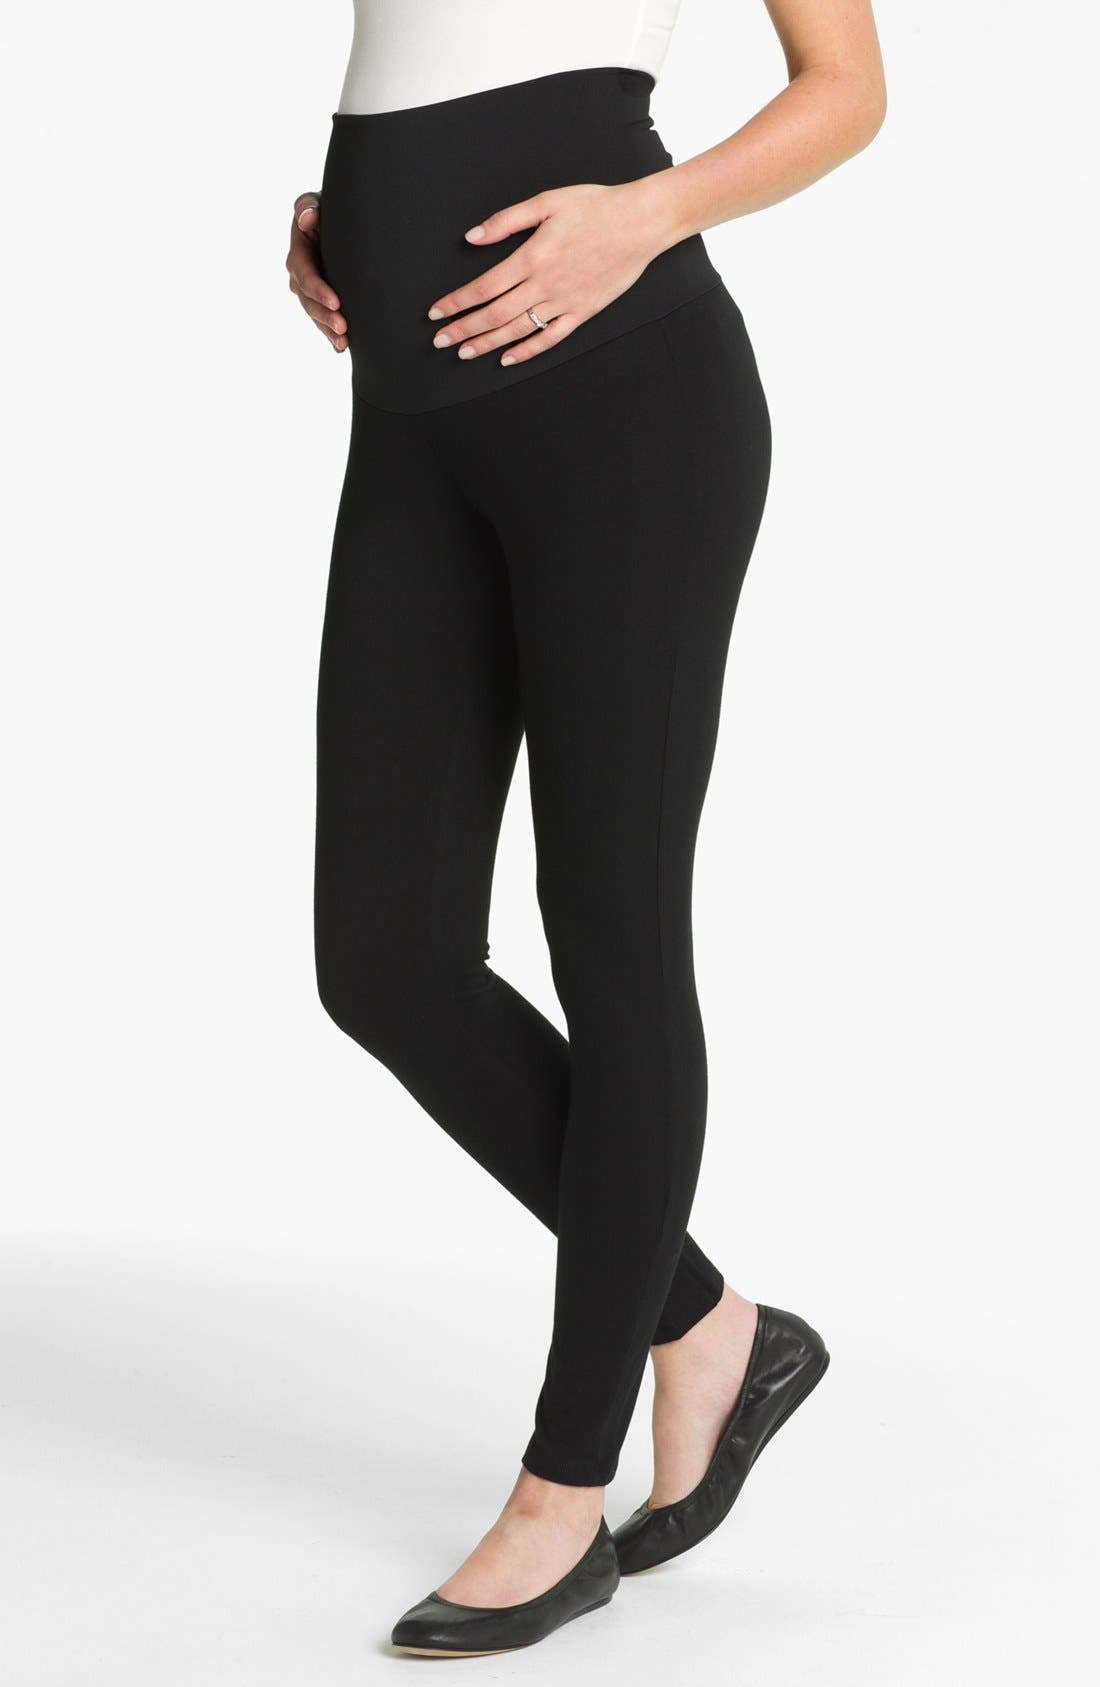 MATERNAL AMERICA Belly Support Maternity Leggings